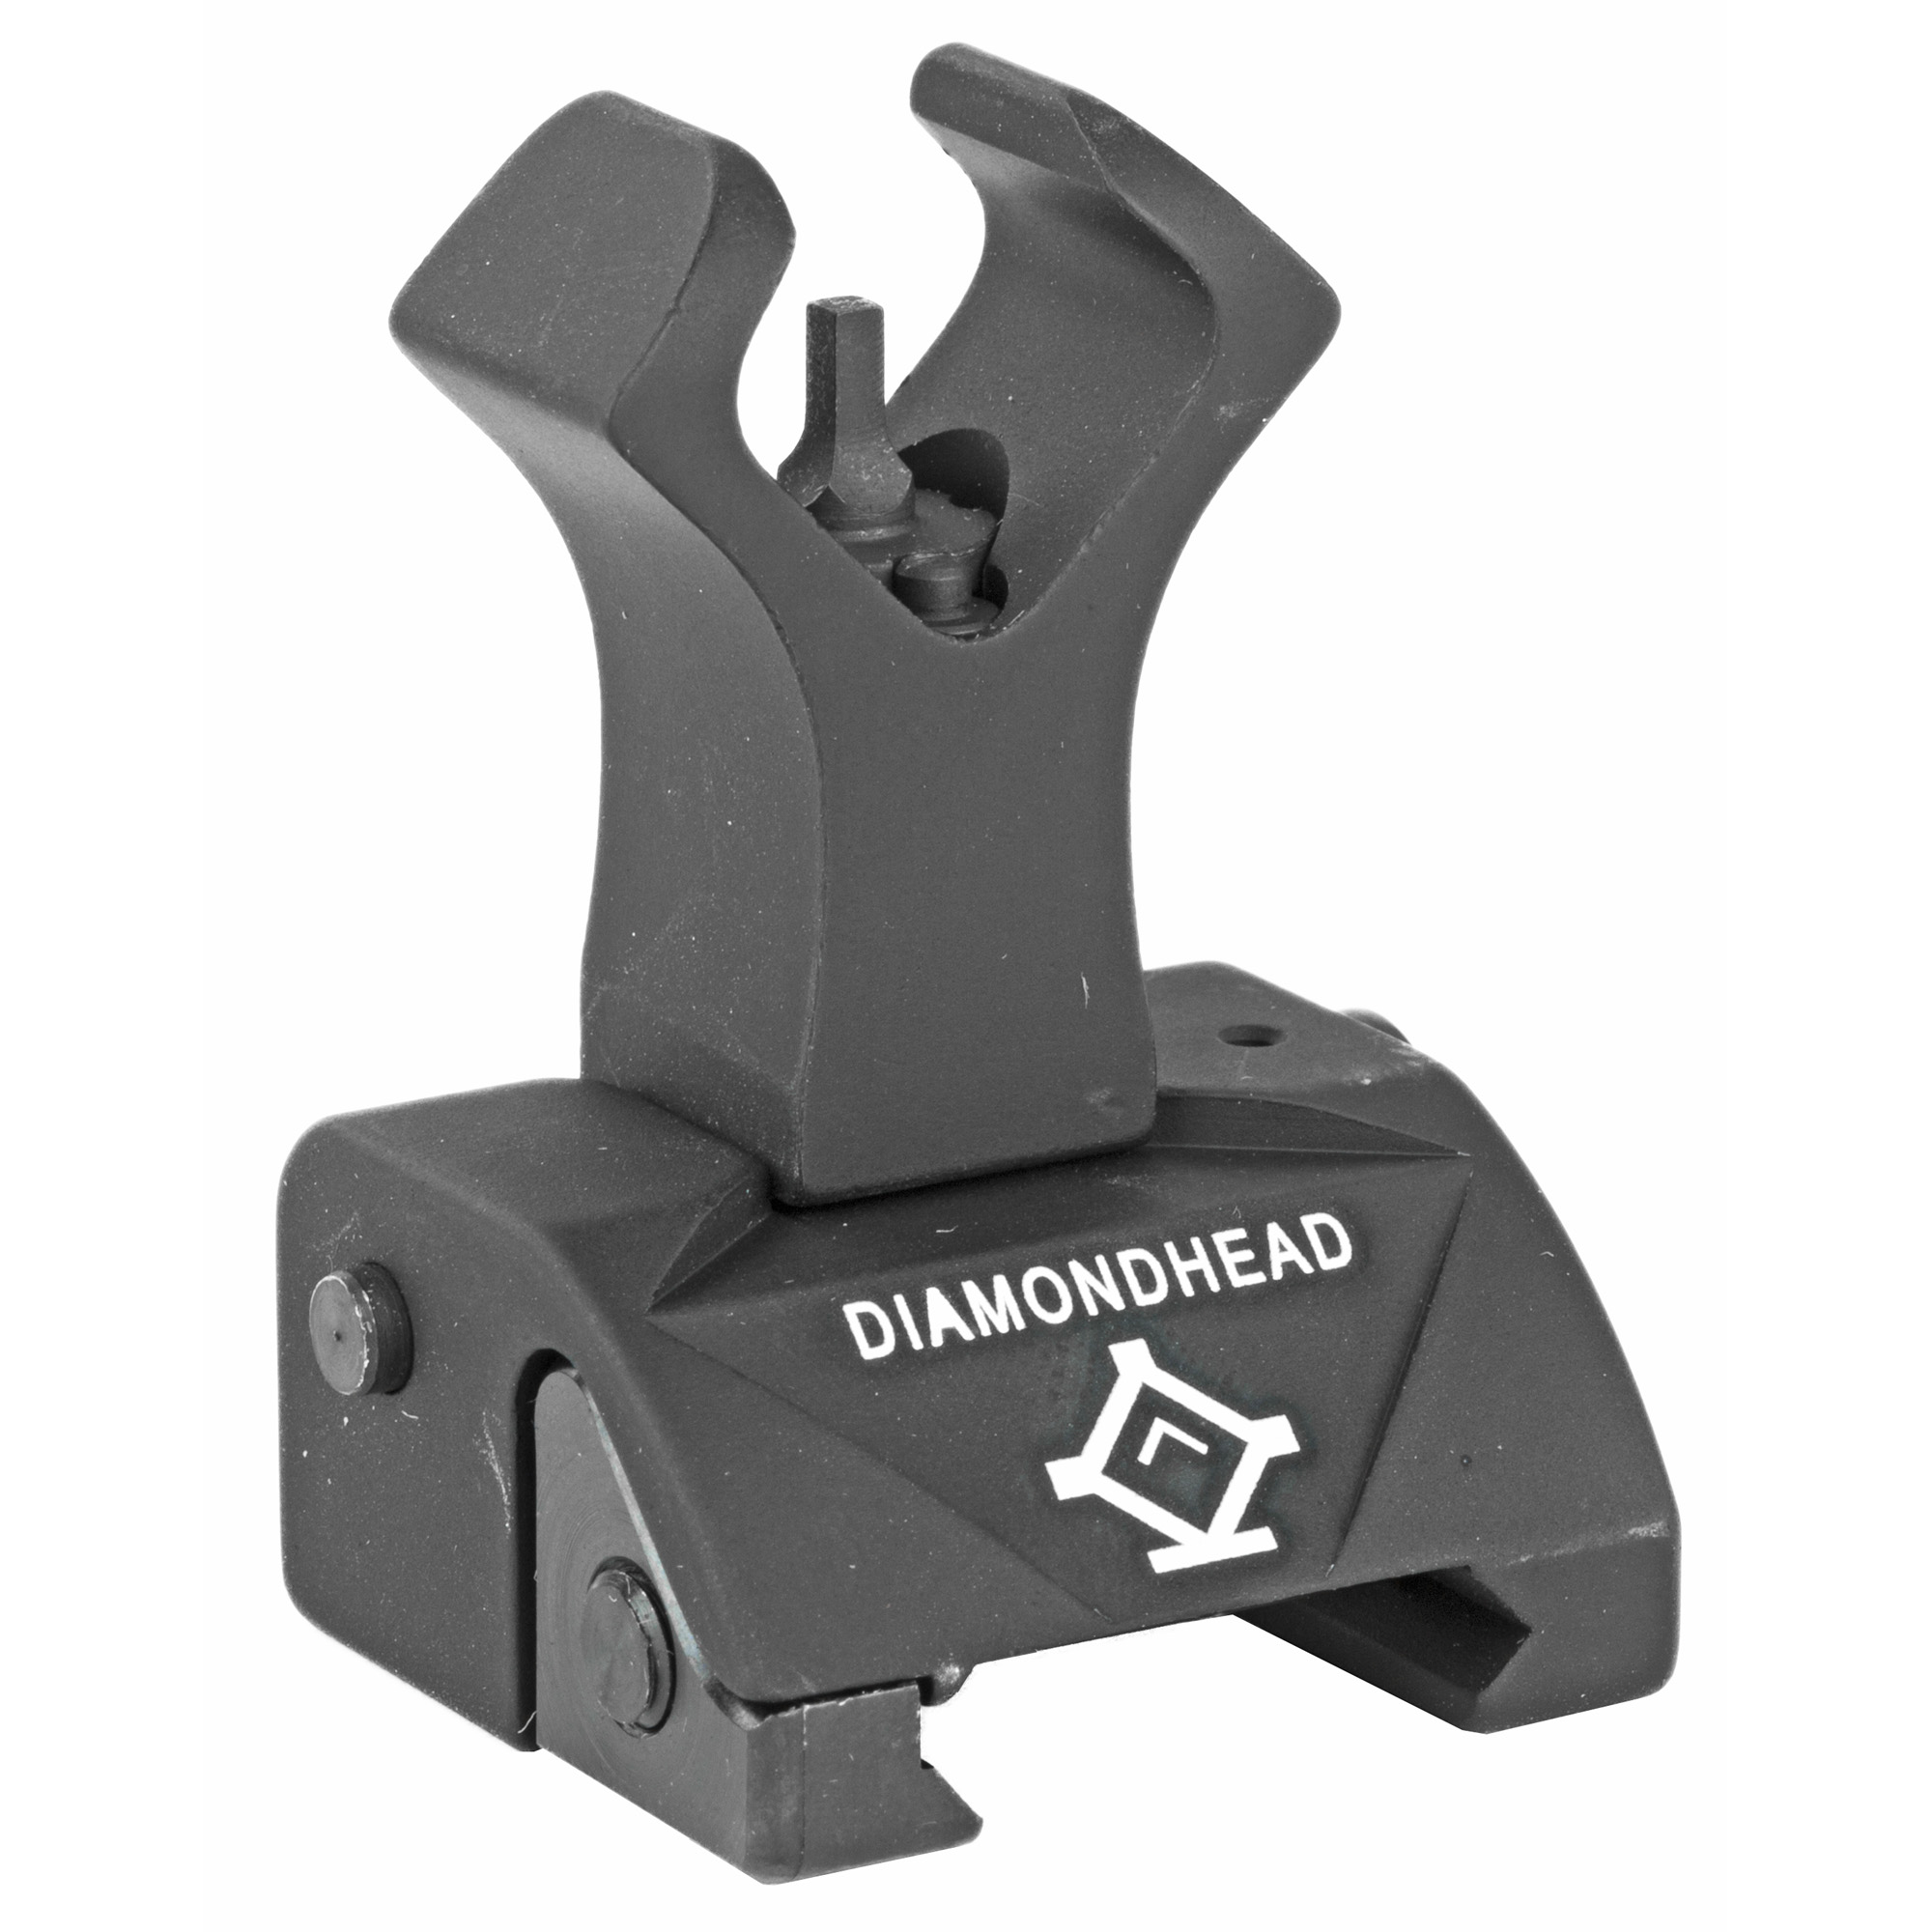 """Diamondhead's Diamond Flip-Up Front Sight's patented Diamond-shaped Housing allows for faster alignment"""" especially when integrated with the DIAMOND Rear Combat Sight and the rear sight's patented Diamond-shaped Apertures. The revolutionary design of the front housing creates a lightning-fast alignment of the front sight post in the center of the rear aperture. Works with Diamondhead (Receiver Height) Gas Block."""